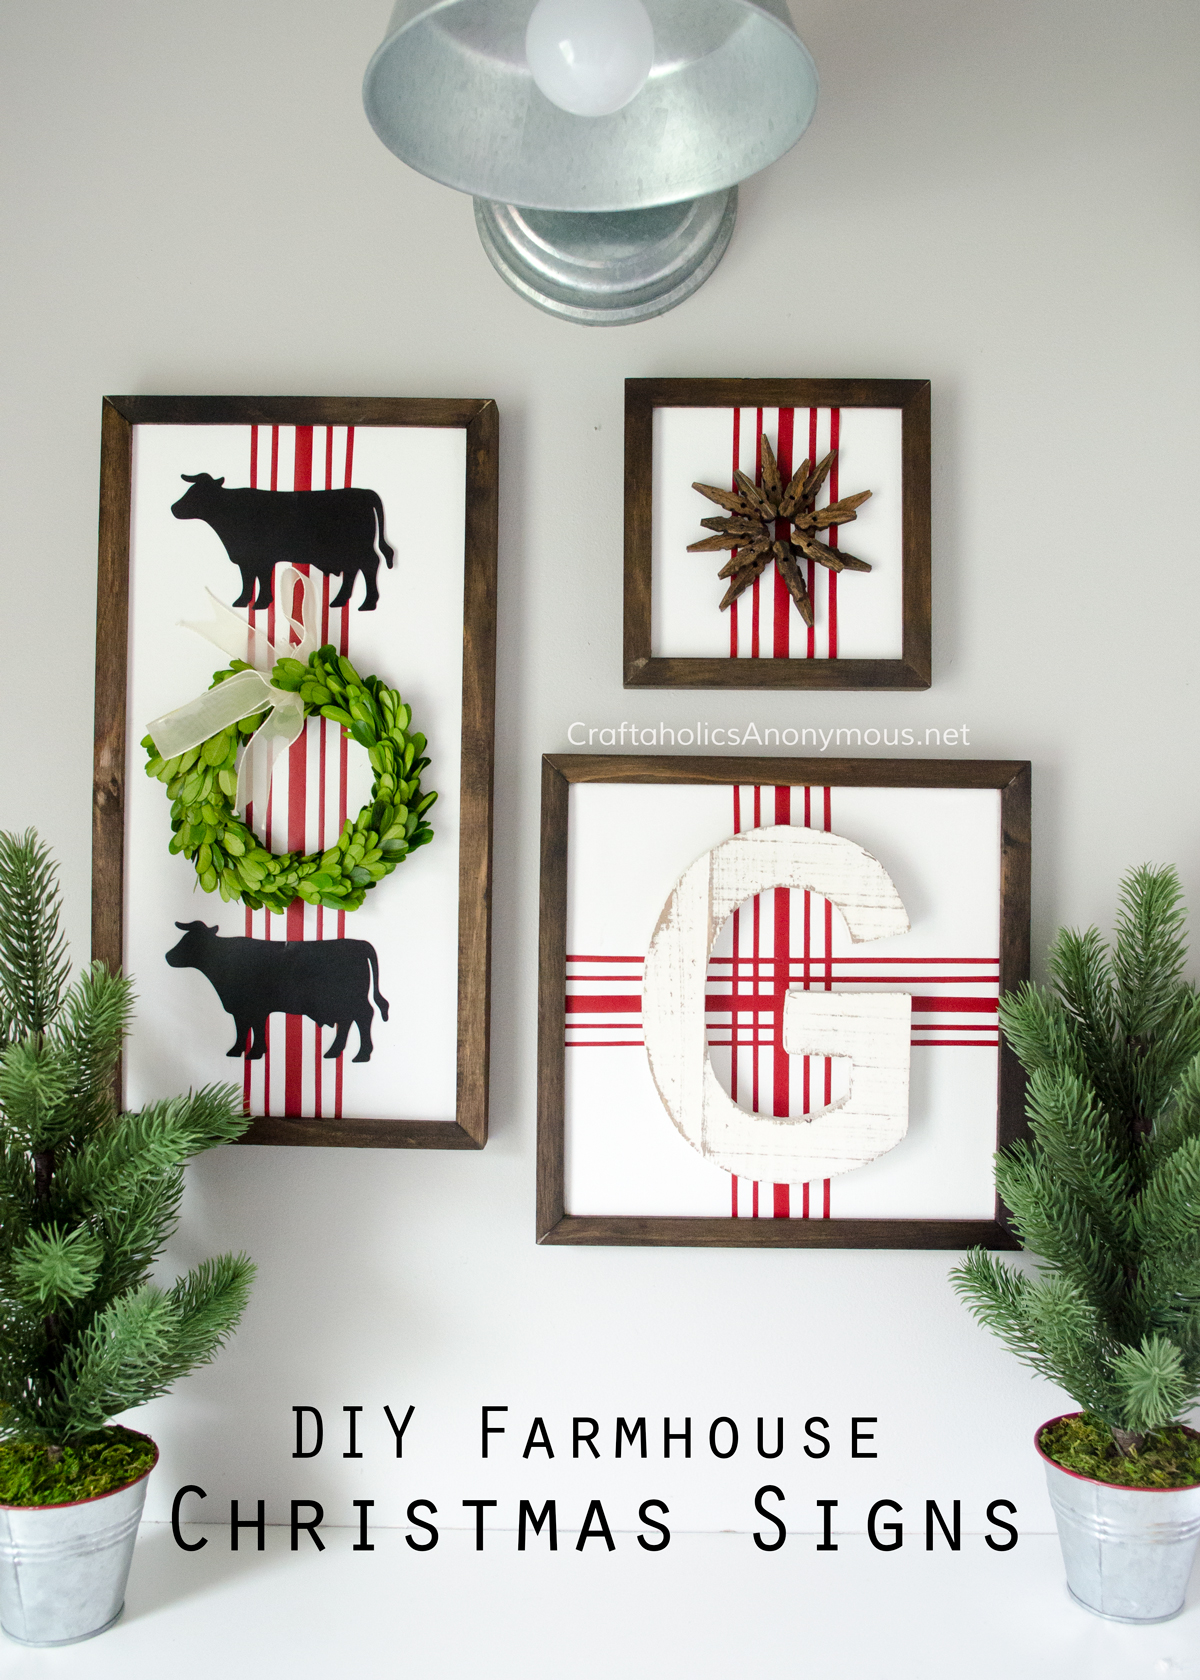 Farmhouse Christmas Decor - DIY Farmhouse Christmas Signs | Craftaholics Anonymous